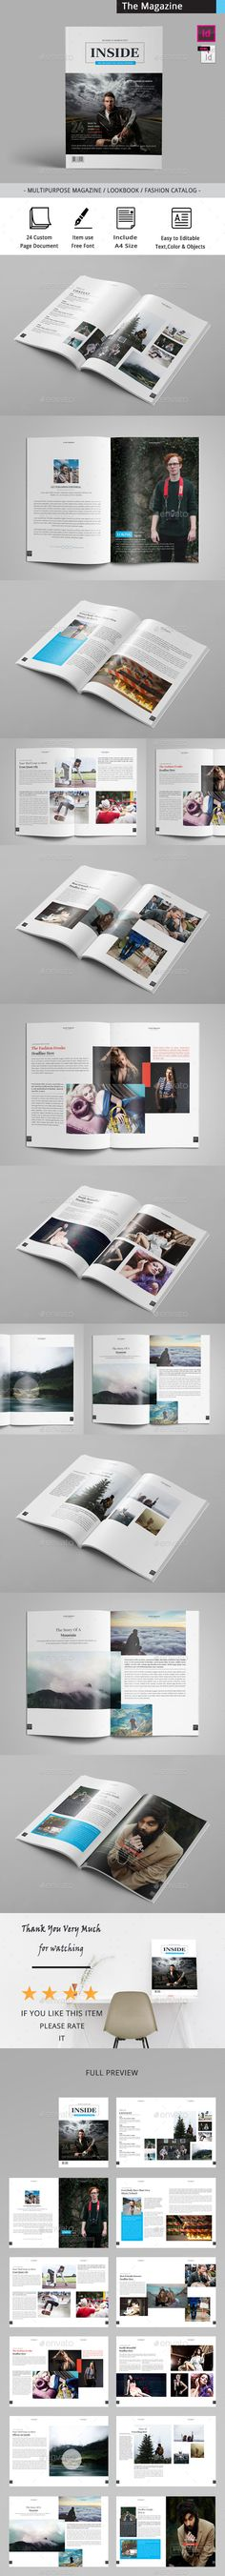 The Magazine by obayes  Brochure Description:The Magazine / Clean & Professional Magazine Template that is super simple to edit and customize with your o